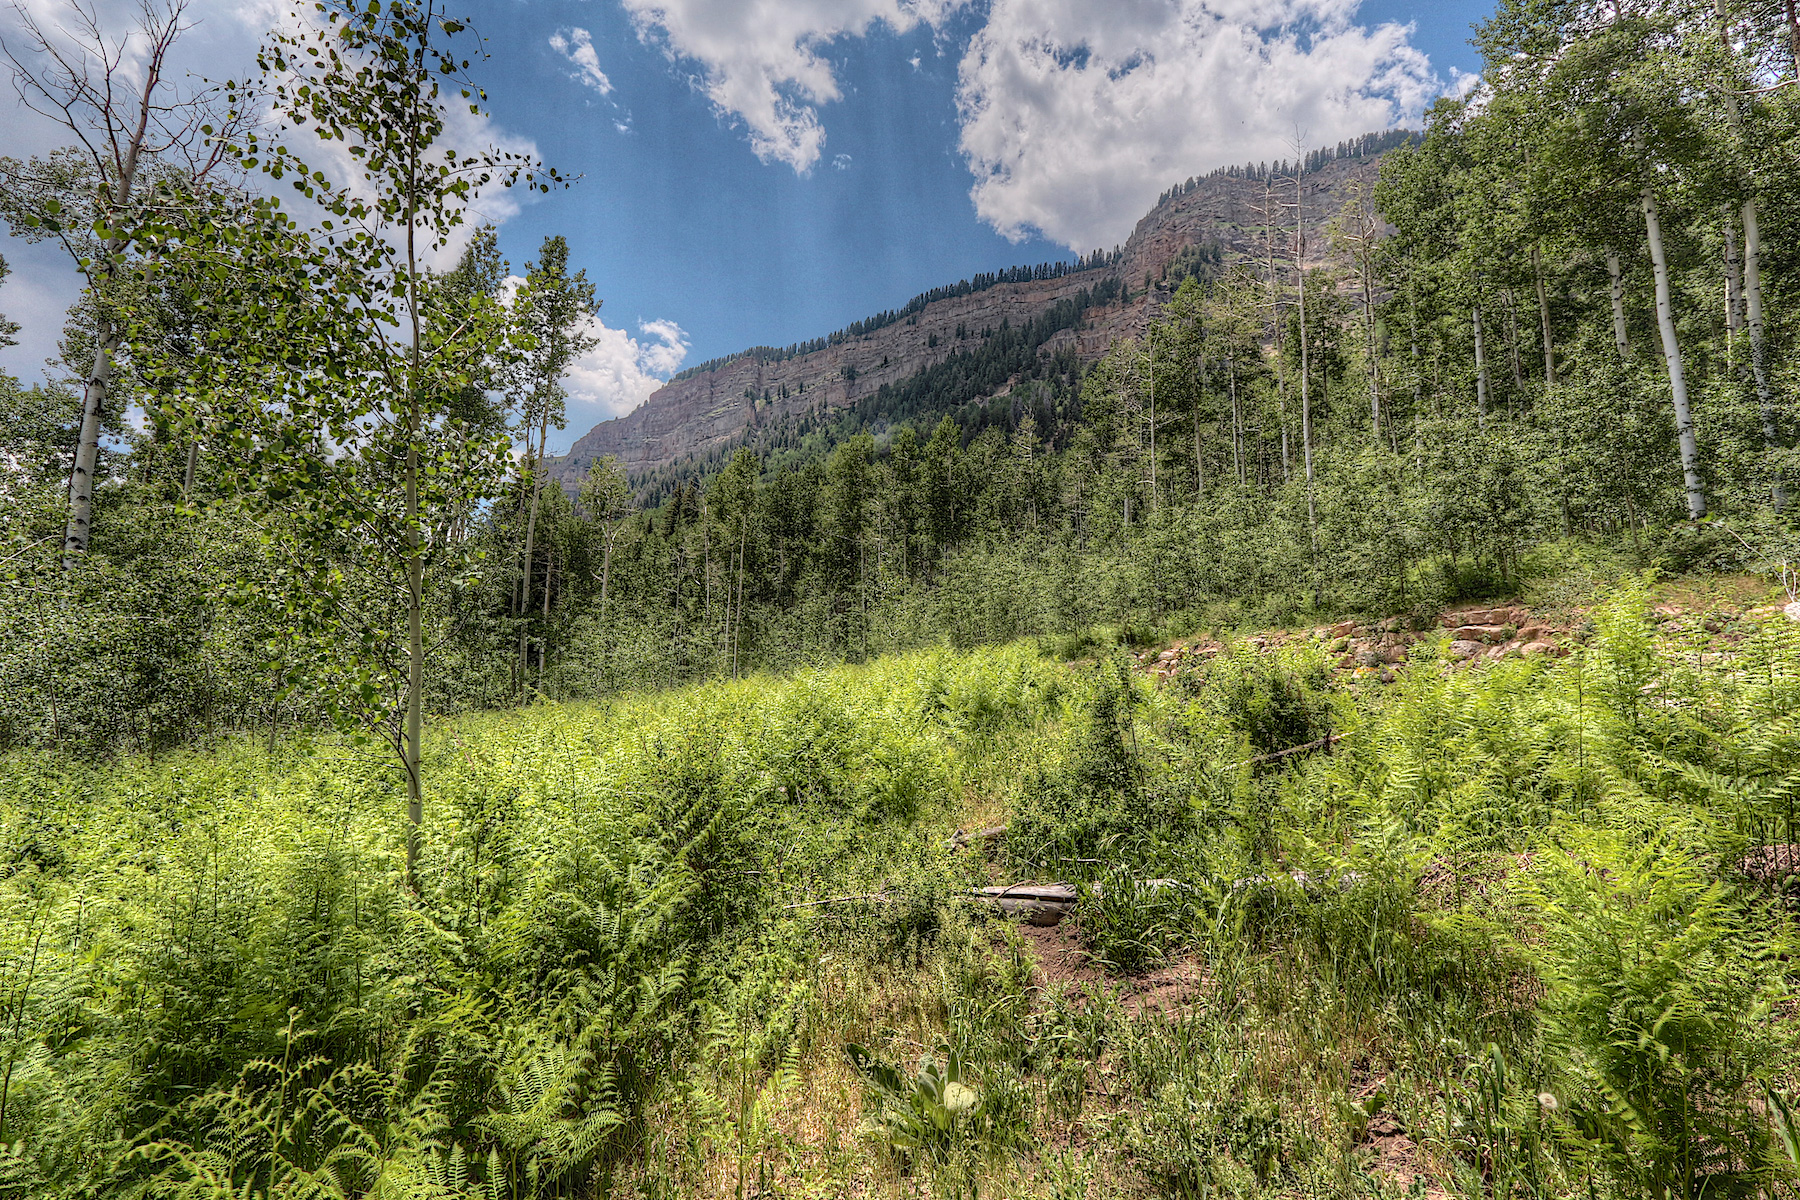 Additional photo for property listing at 455 Wilshire Drive 455 Wilshire Drive Durango, Colorado 81301 United States